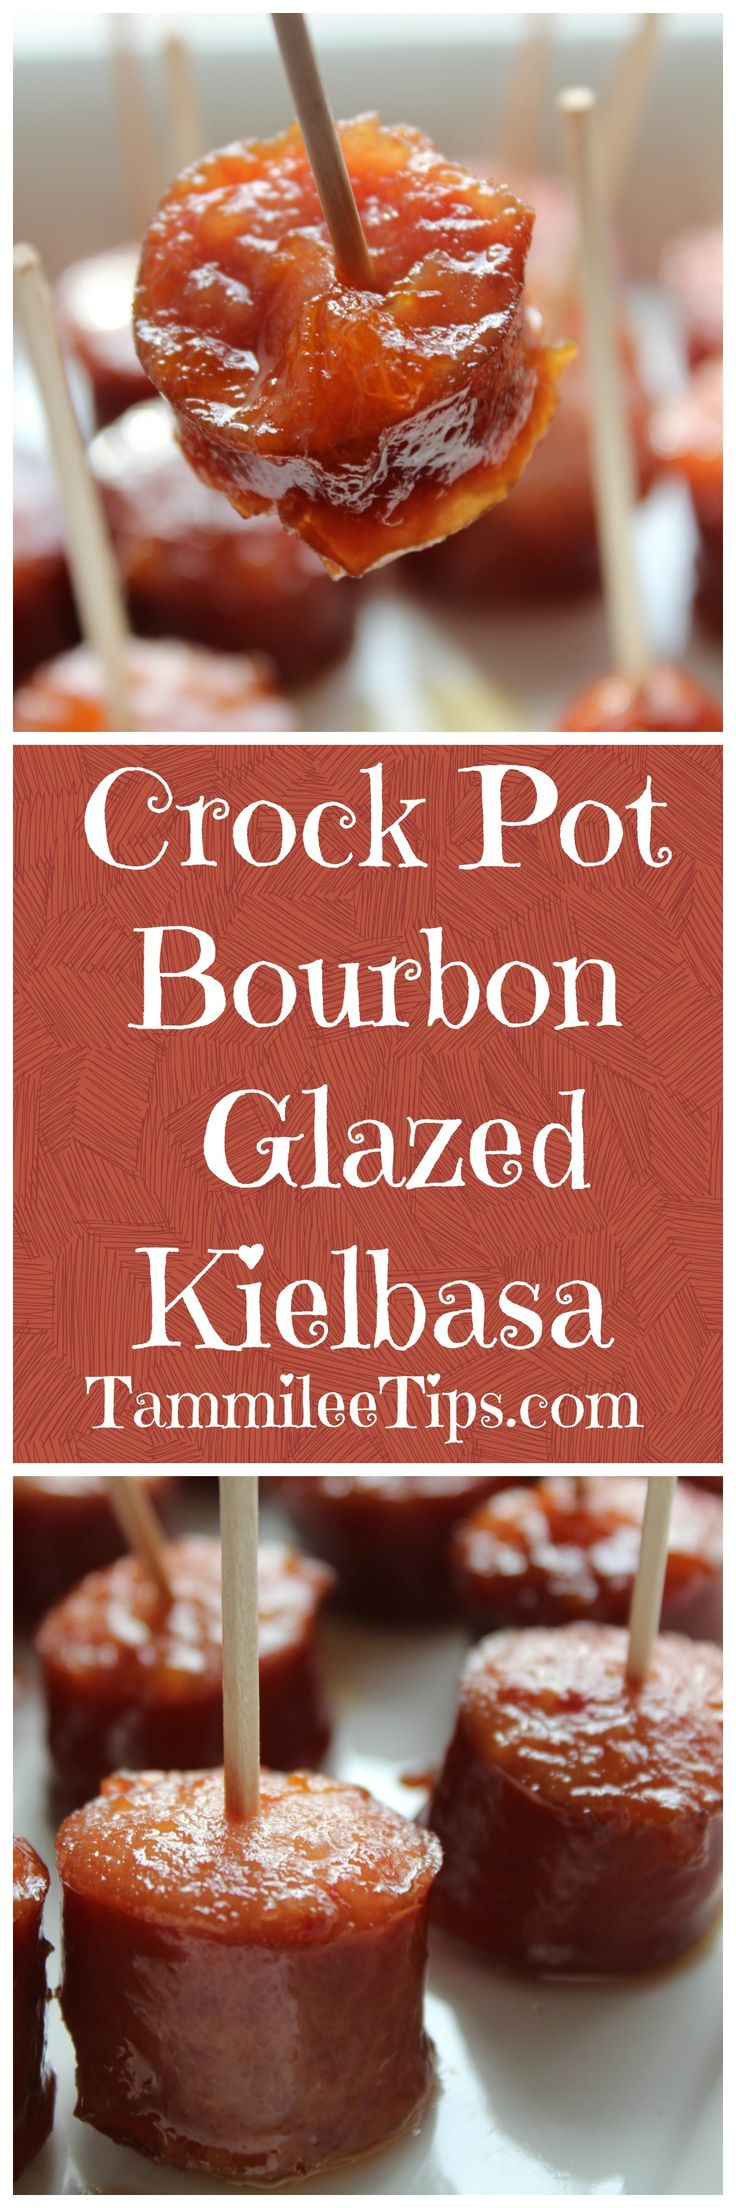 Crock Pot Bourbon Glazed Kielbasa Recipe is so easy! Great appetizers recipes for your football party, dinner, for a crowd, baby shower, birthday, friends or families dinners. So simple and easy to make!